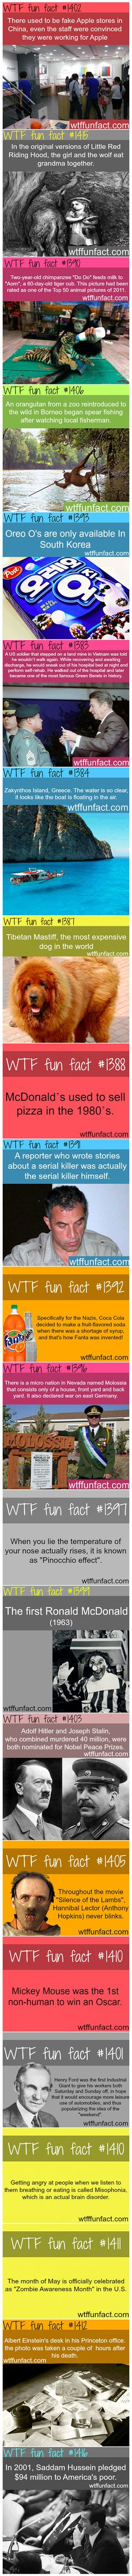 We have rounded up some fun and random facts that you probably did not know were true.